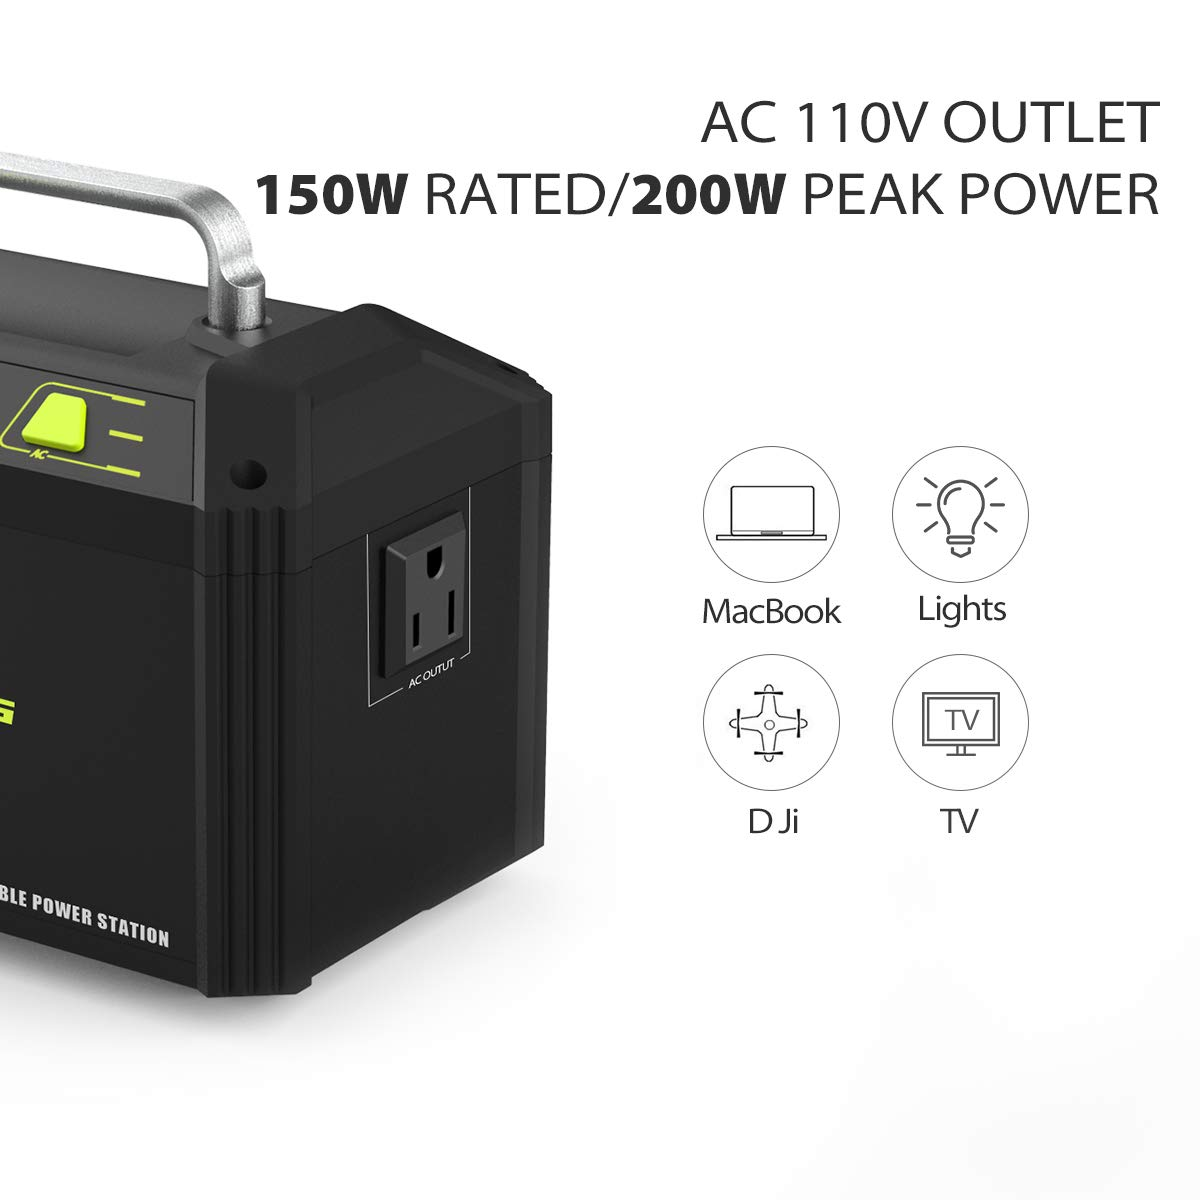 ROCKPALS 178Wh 48000mAh Portable Generator CPAP Battery Pack for Camping, 150W Solar Power Generator Power Station with 110V AC Outlet, 12V Car, USB Output for Home Emergency Backup by ROCKPALS (Image #2)